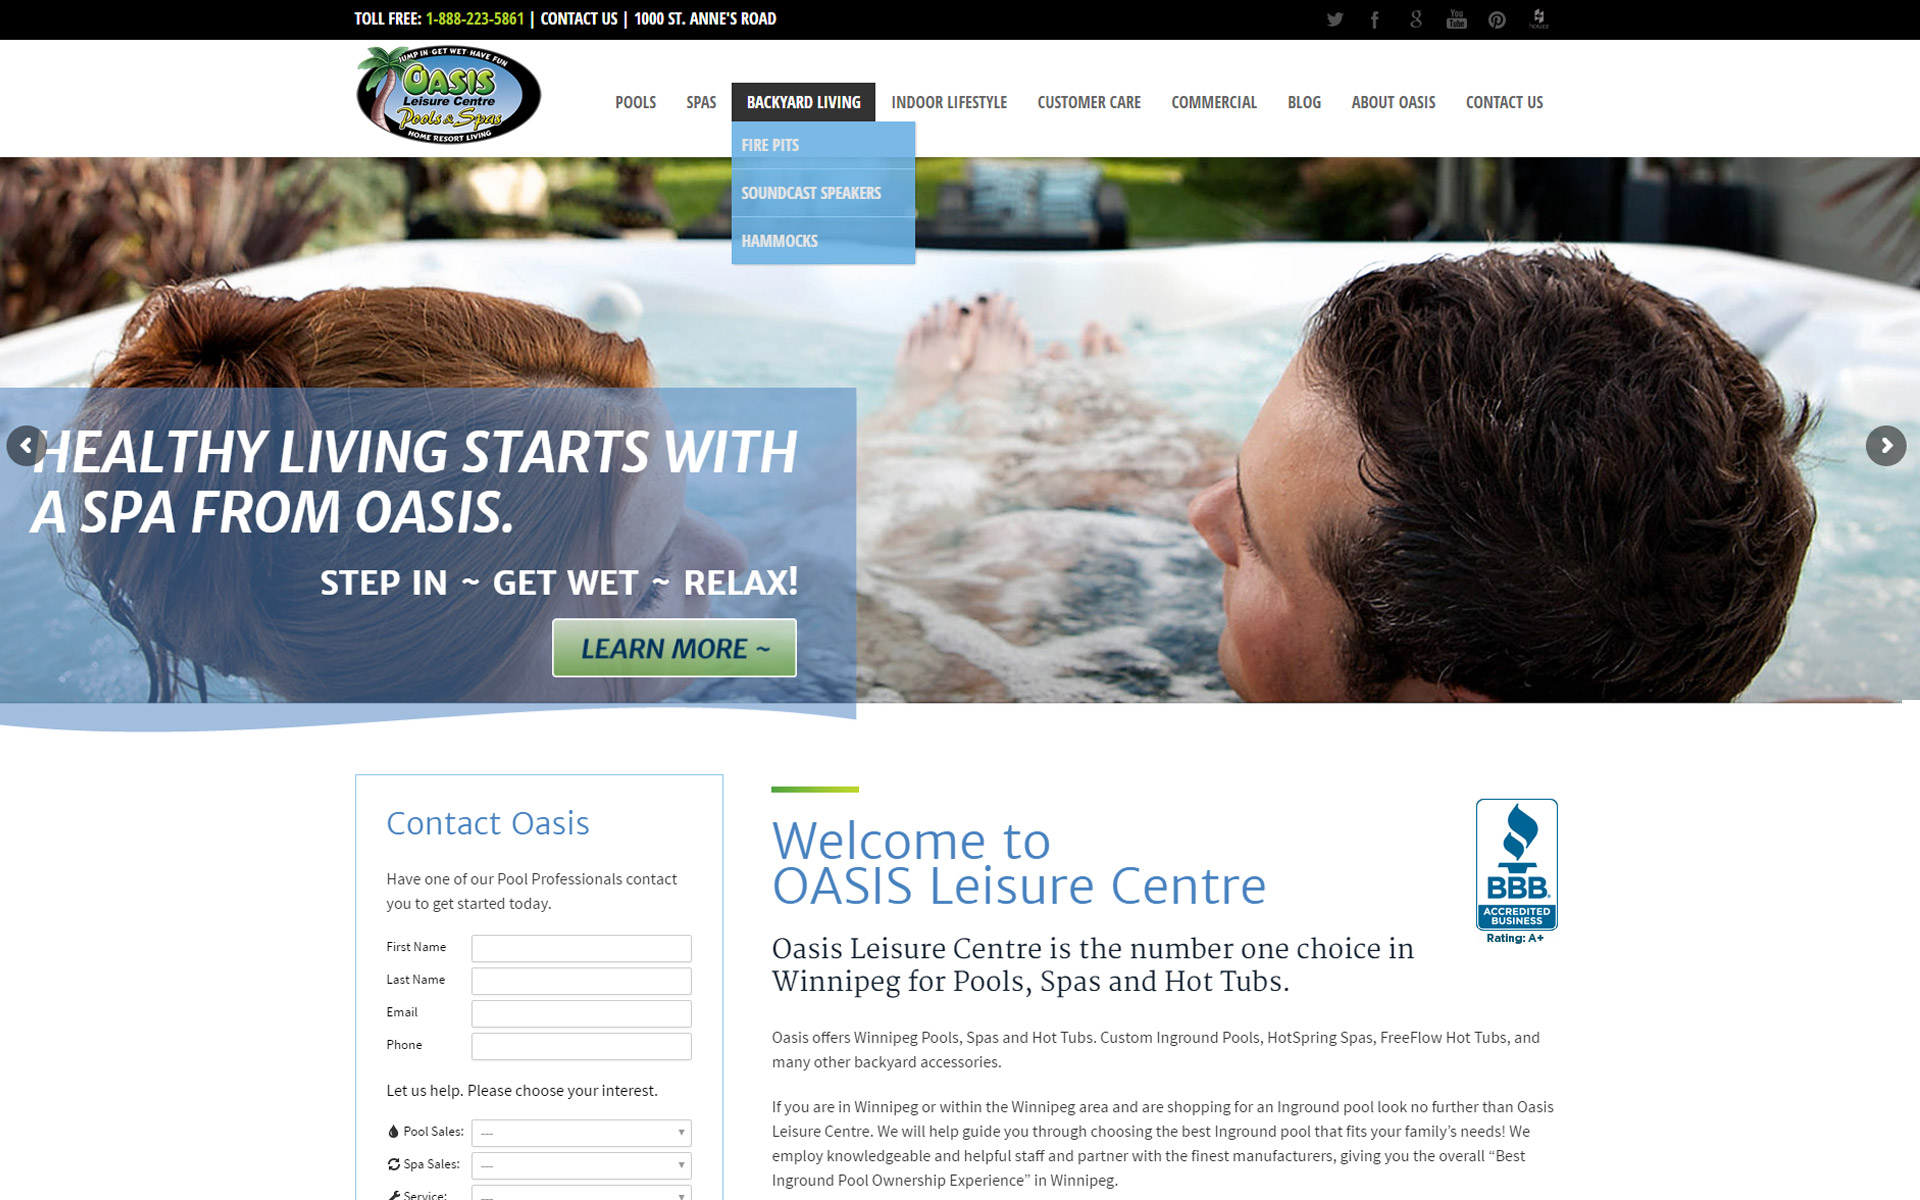 Oasis site